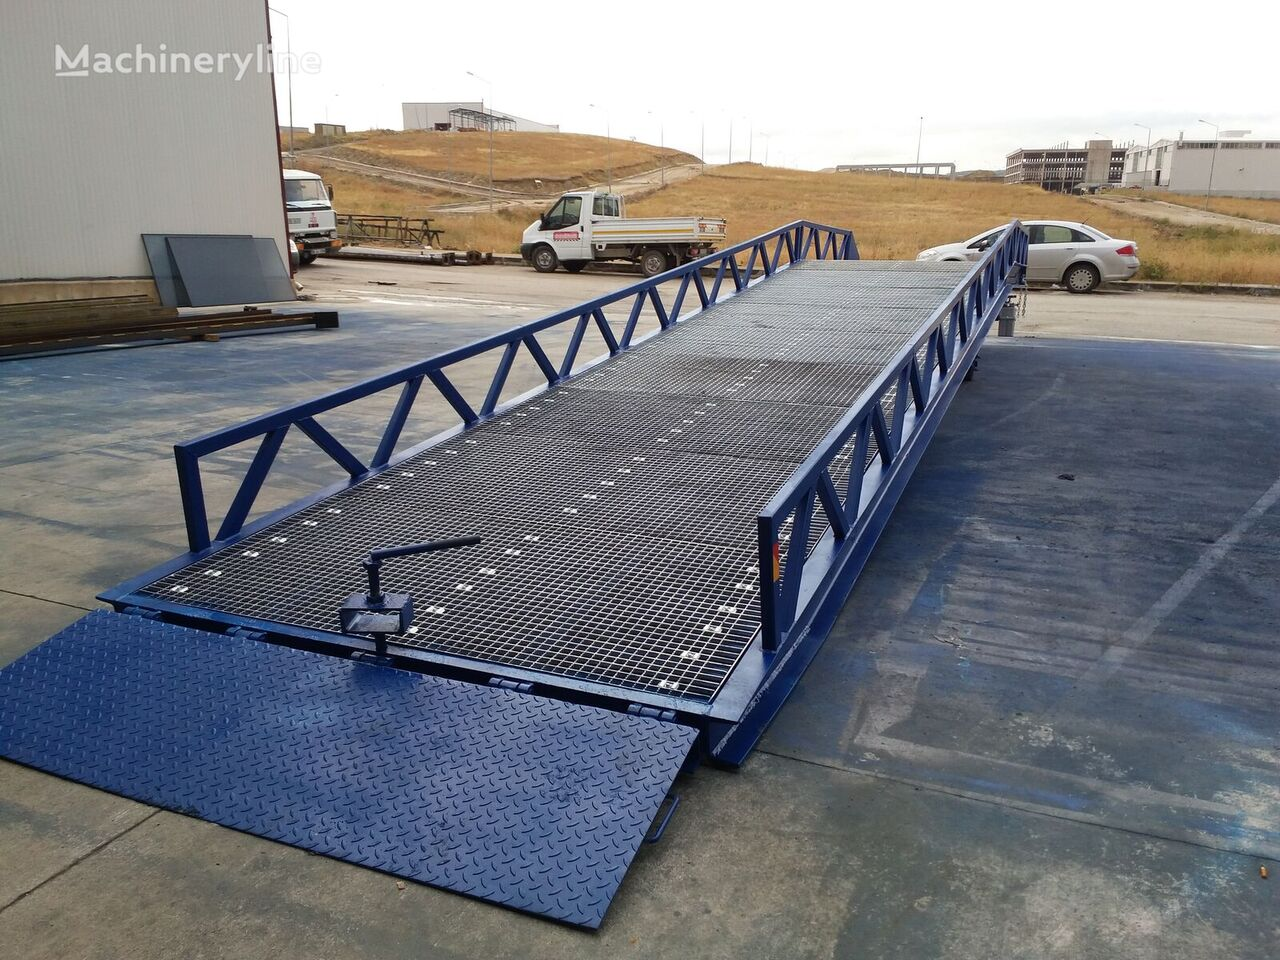 new KALE RAMPA KL-HYD loading dock ramp